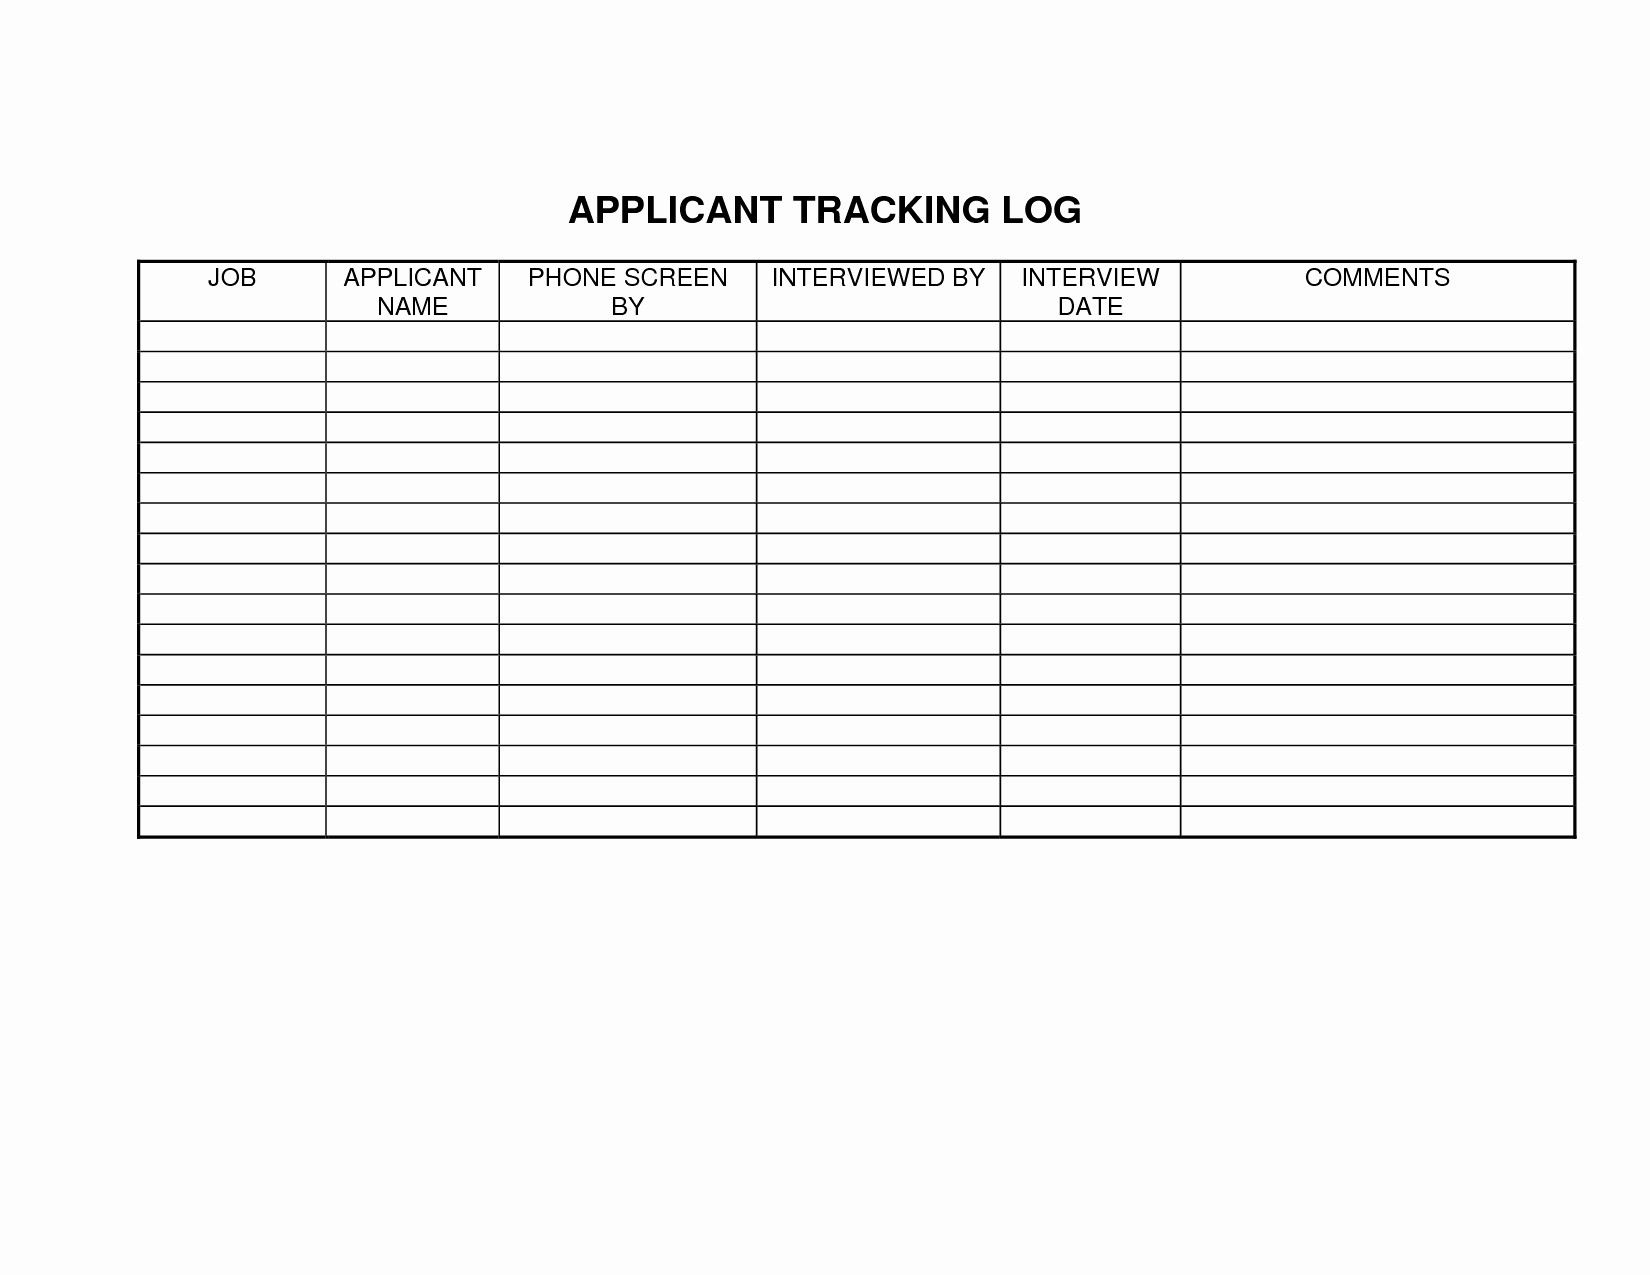 Job Application Tracker Spreadsheet Inside Applicant Tracking Spreadsheet Template Job Search Free Tracker Job Application Tracker Spreadsheet Google Spreadshee Google Spreadshee job search tracker spreadsheet